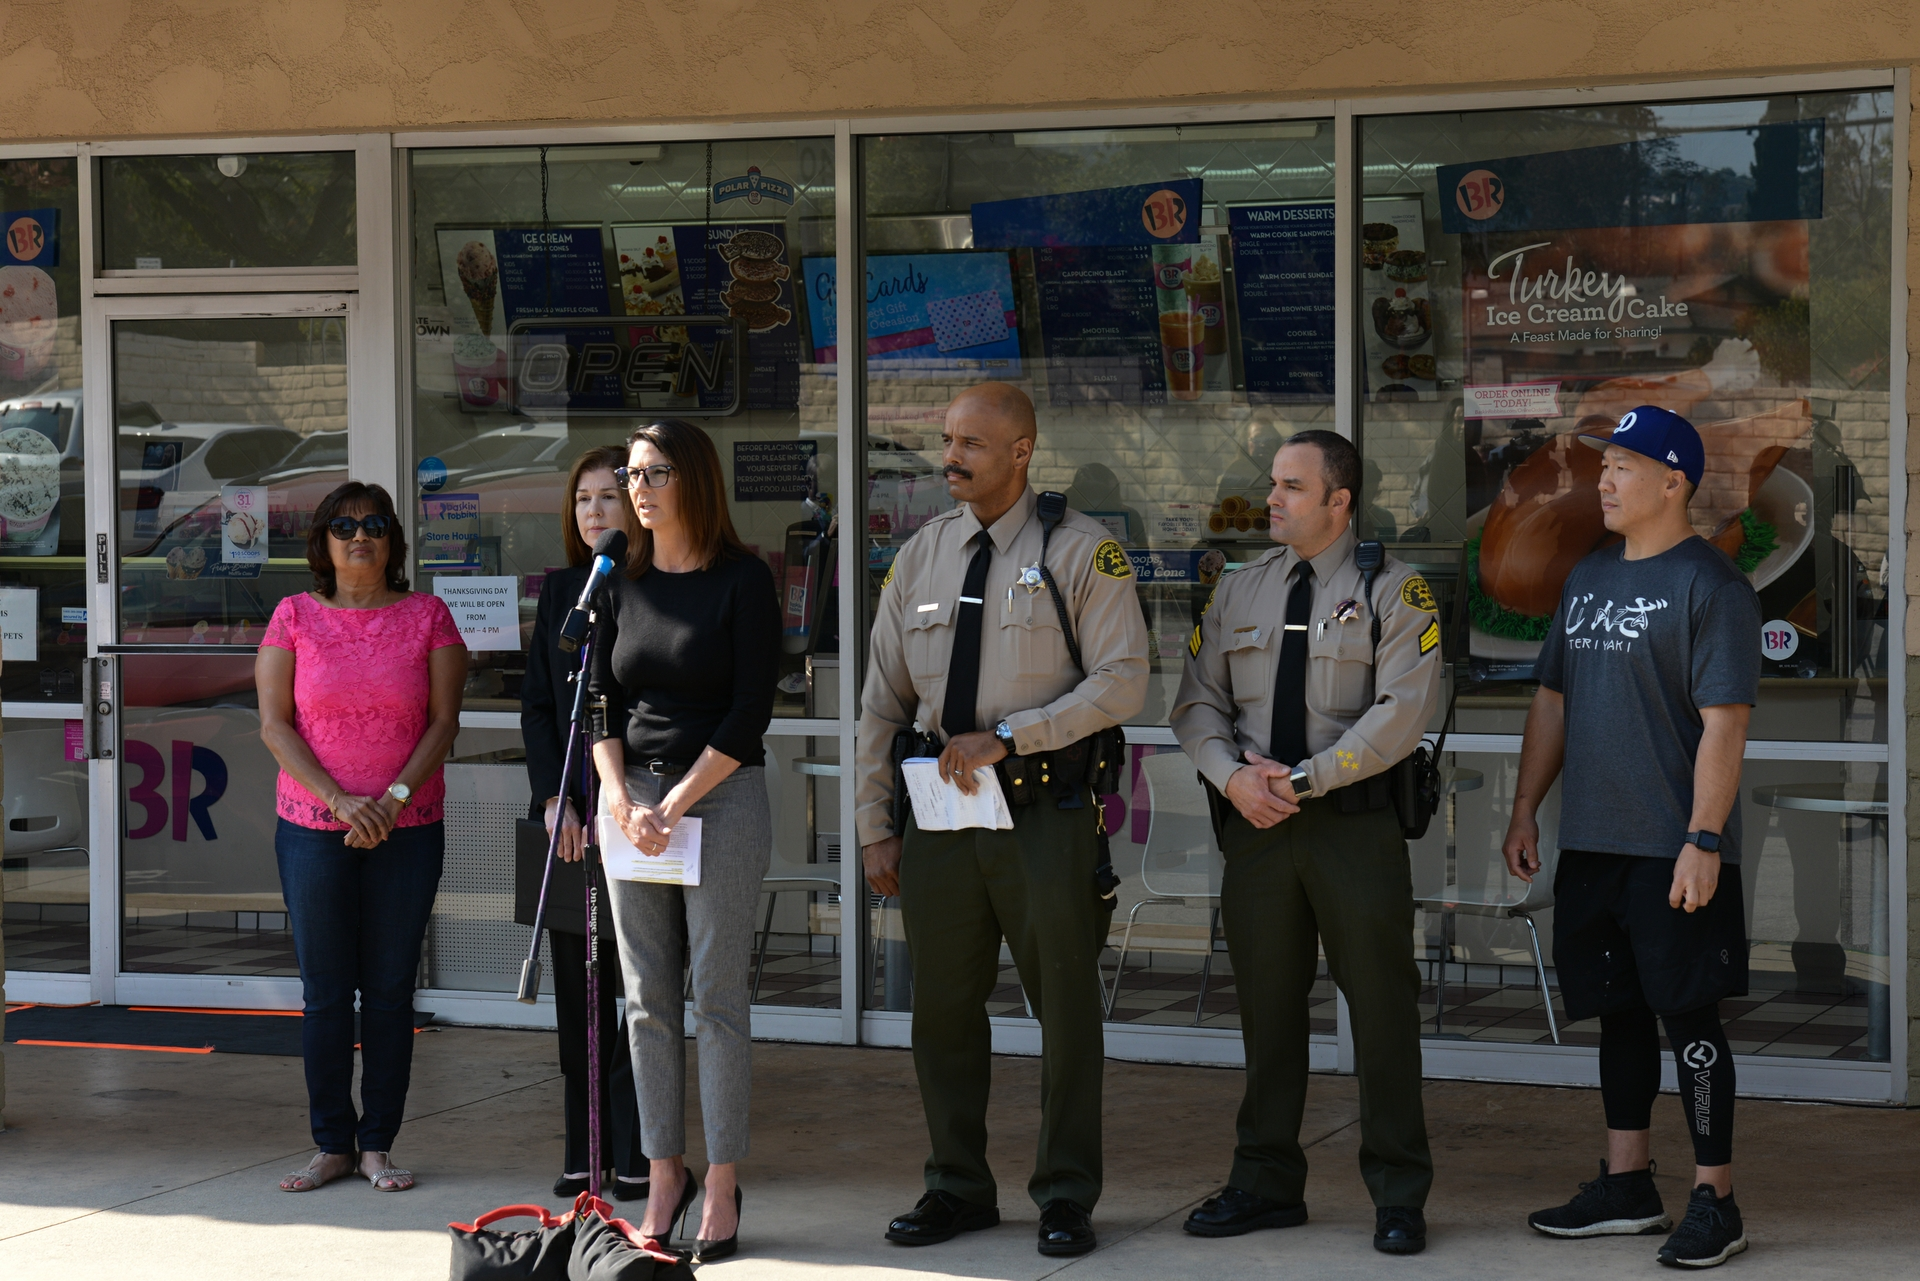 Edison's Consumer Affairs manager Kari Gardner, third from left, warns SCE customers and the general public to stay alert this holiday season when utility phone scams increase. Joining her left to right: Jyotsna Maru, Baskin-Robbins shop owner; Stephanie Orrick, FBI; detective Wayne Countryman, L.A. County Sheriff's Industry Station, an L.A. County Sheriff's associate; and John Lee, owner of Jinza Teriyaki in Pomona.